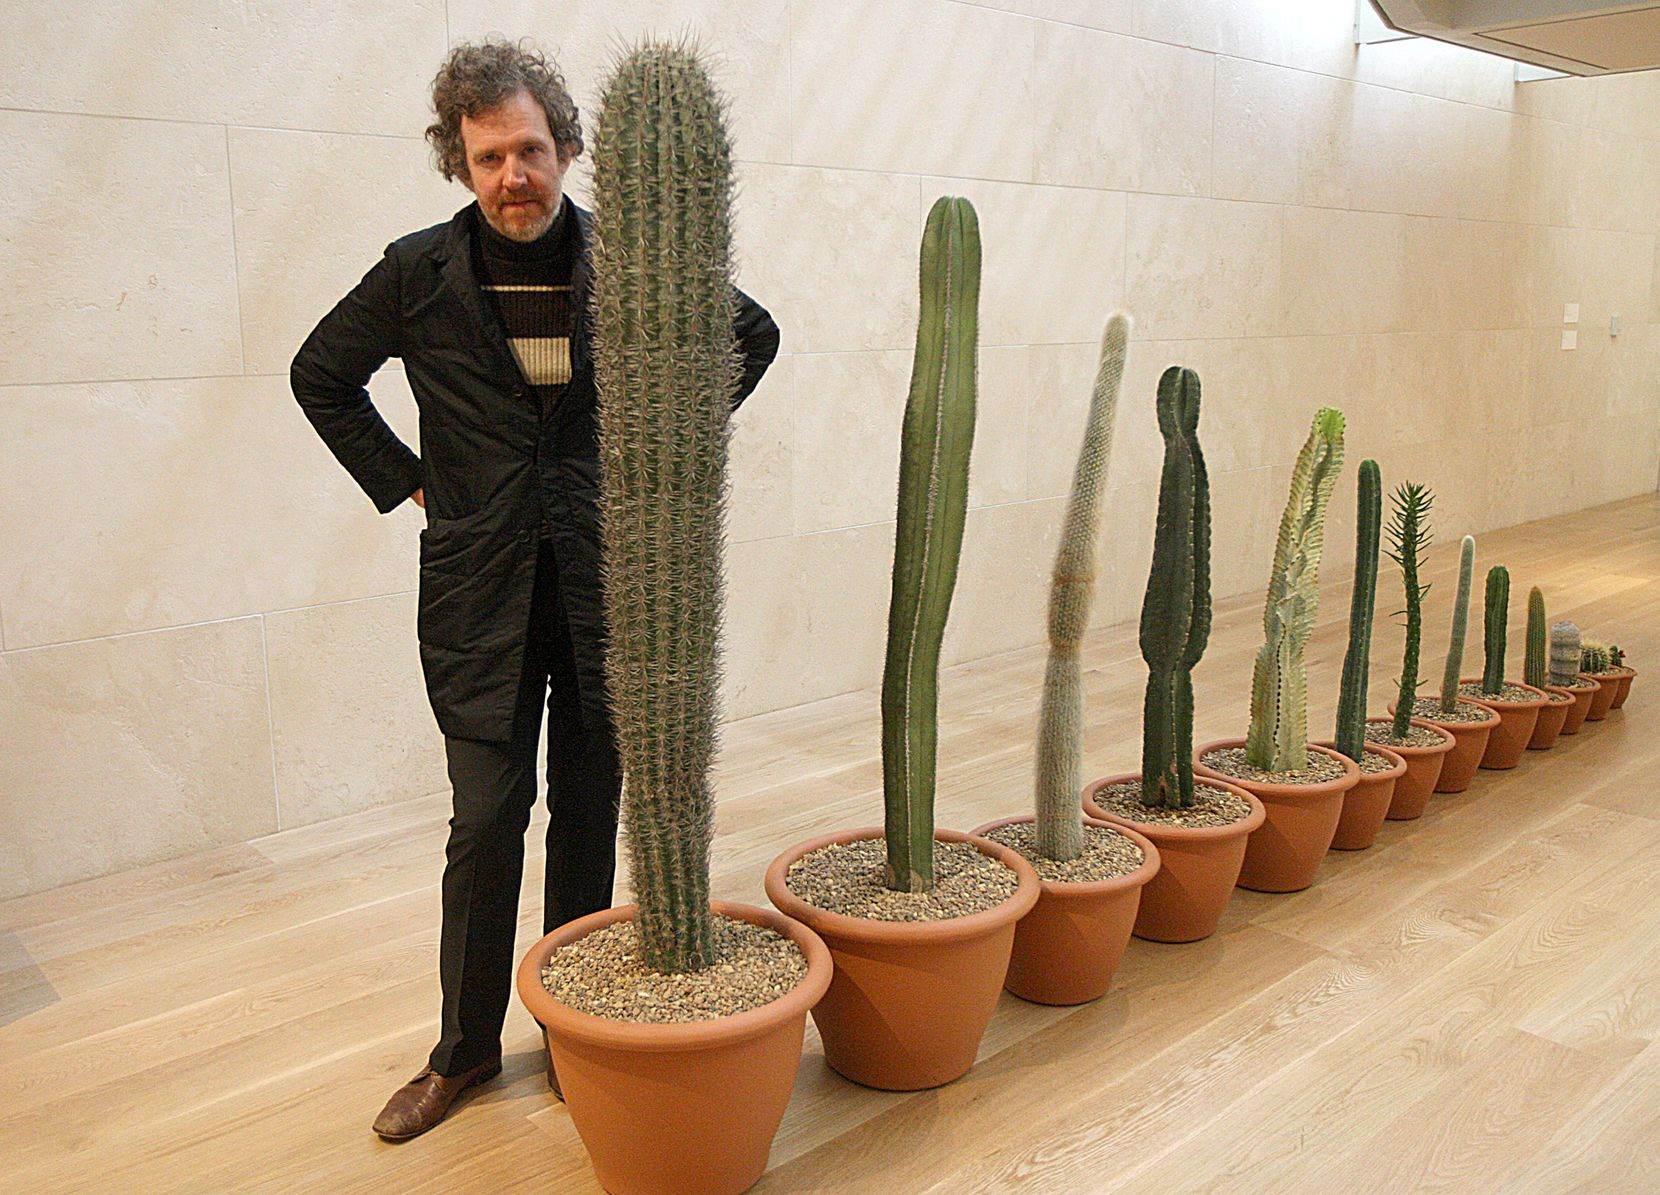 Martin Creed, shown here at the Nasher Sculpture Center in 2011, is best known as a visual artist, but he has also been writing and performing music for decades.